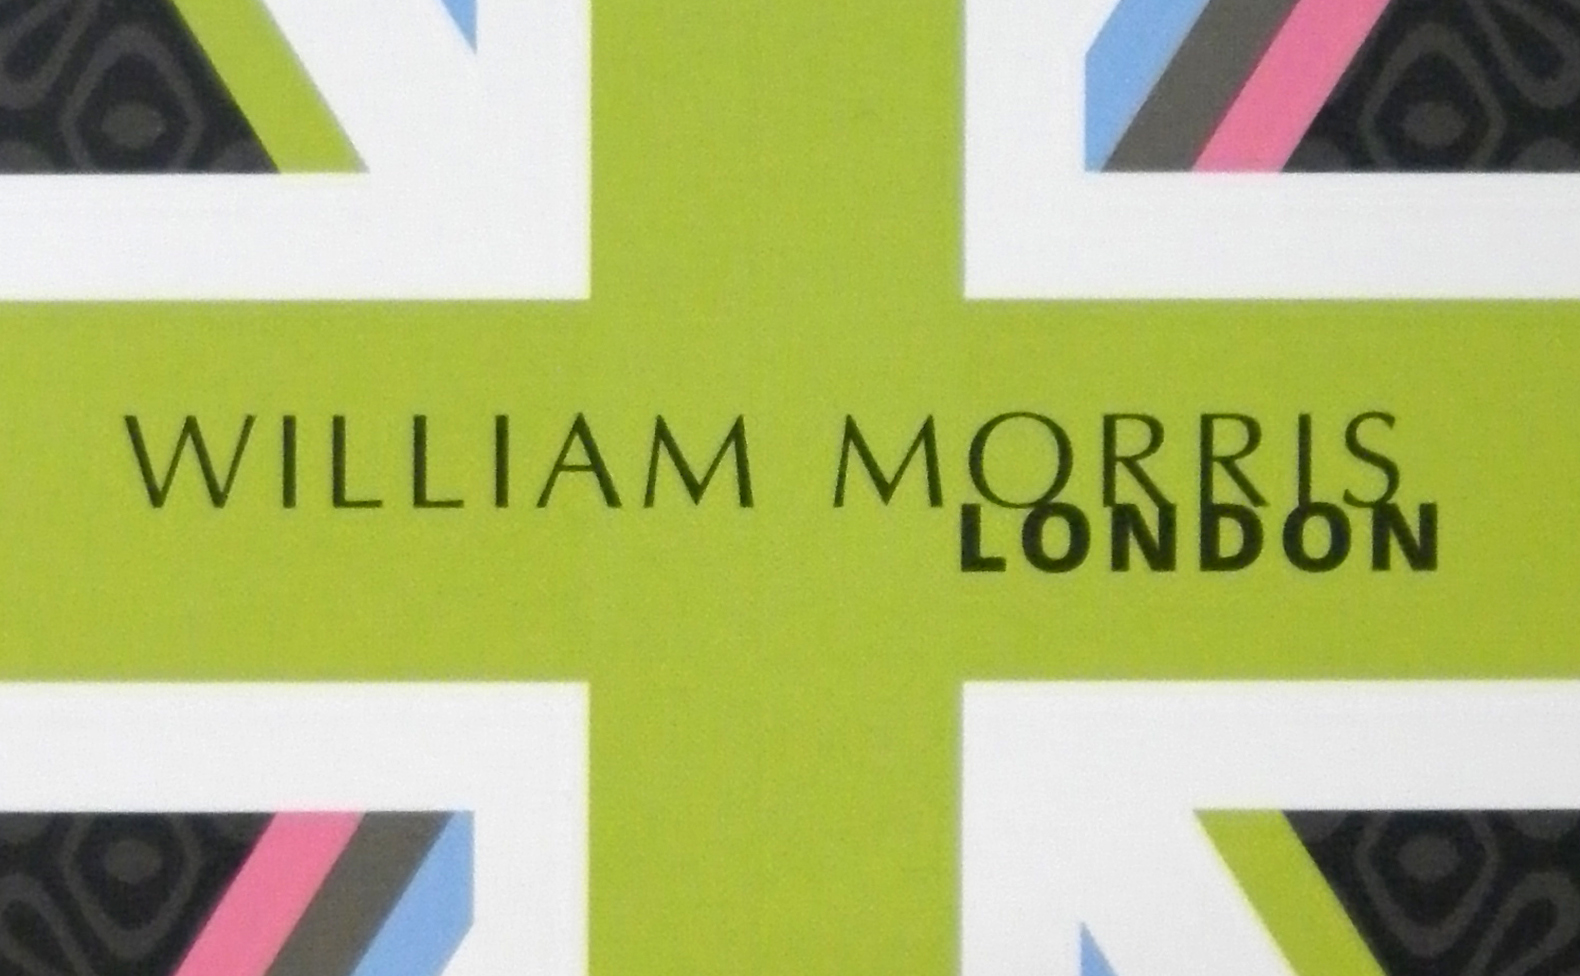 williammorrislogo